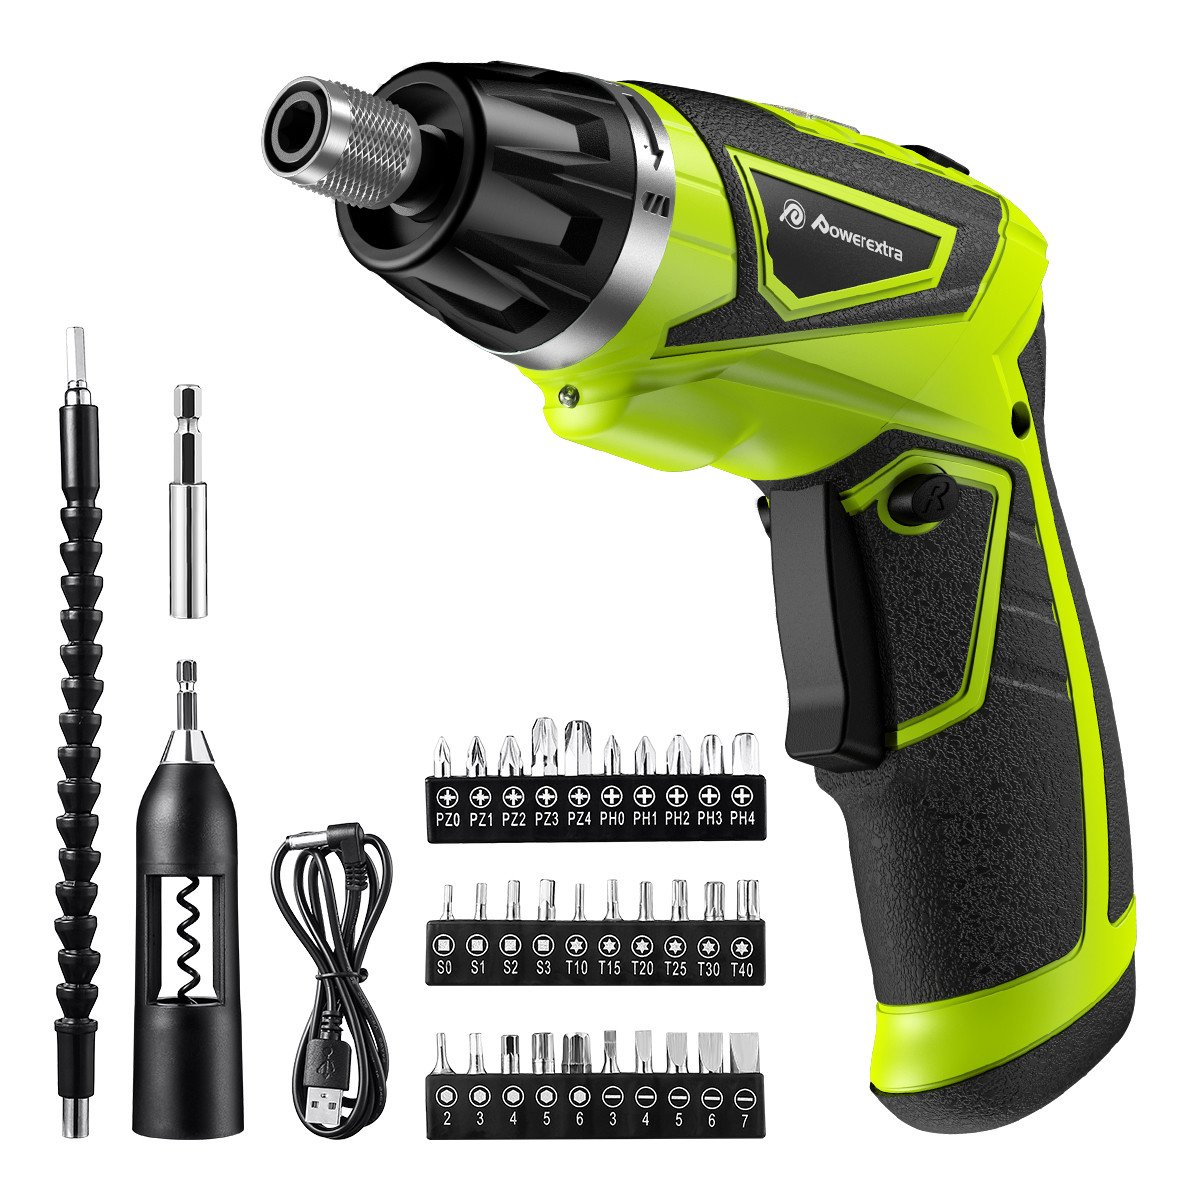 Powerextra Cordless Rechargeable Screwdriver 3.6-Volt 2000mAh Li-ion MAX Torque 6N.m Screw Power Gun with 6+1 Torque,30pcs Driver Bits,USB Charging Cable,Wine Opener by Powerextra